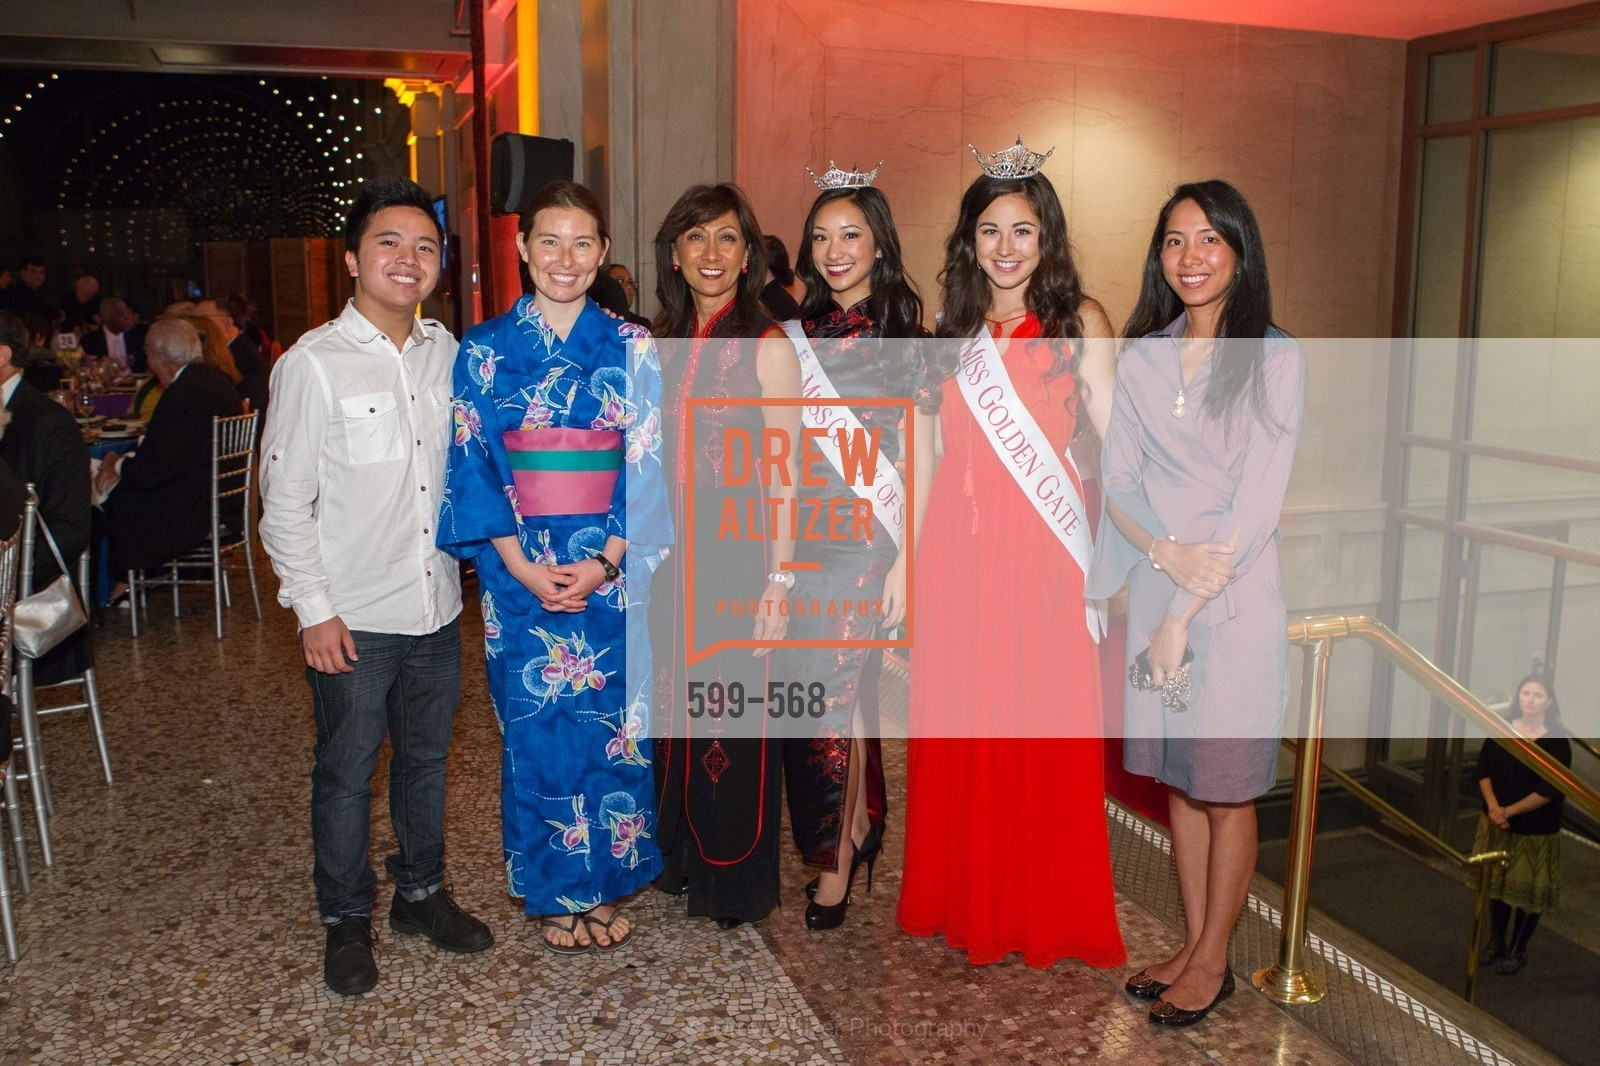 Jonathan Young, Roxanne Derr, Nikki Baluchian, Emily Tom, Brene Carlson, SOTHEBY'S  Hosts a Private Viewing of Highlights from the Collection of MRS. PAUL MELLON, US, September 17th, 2014